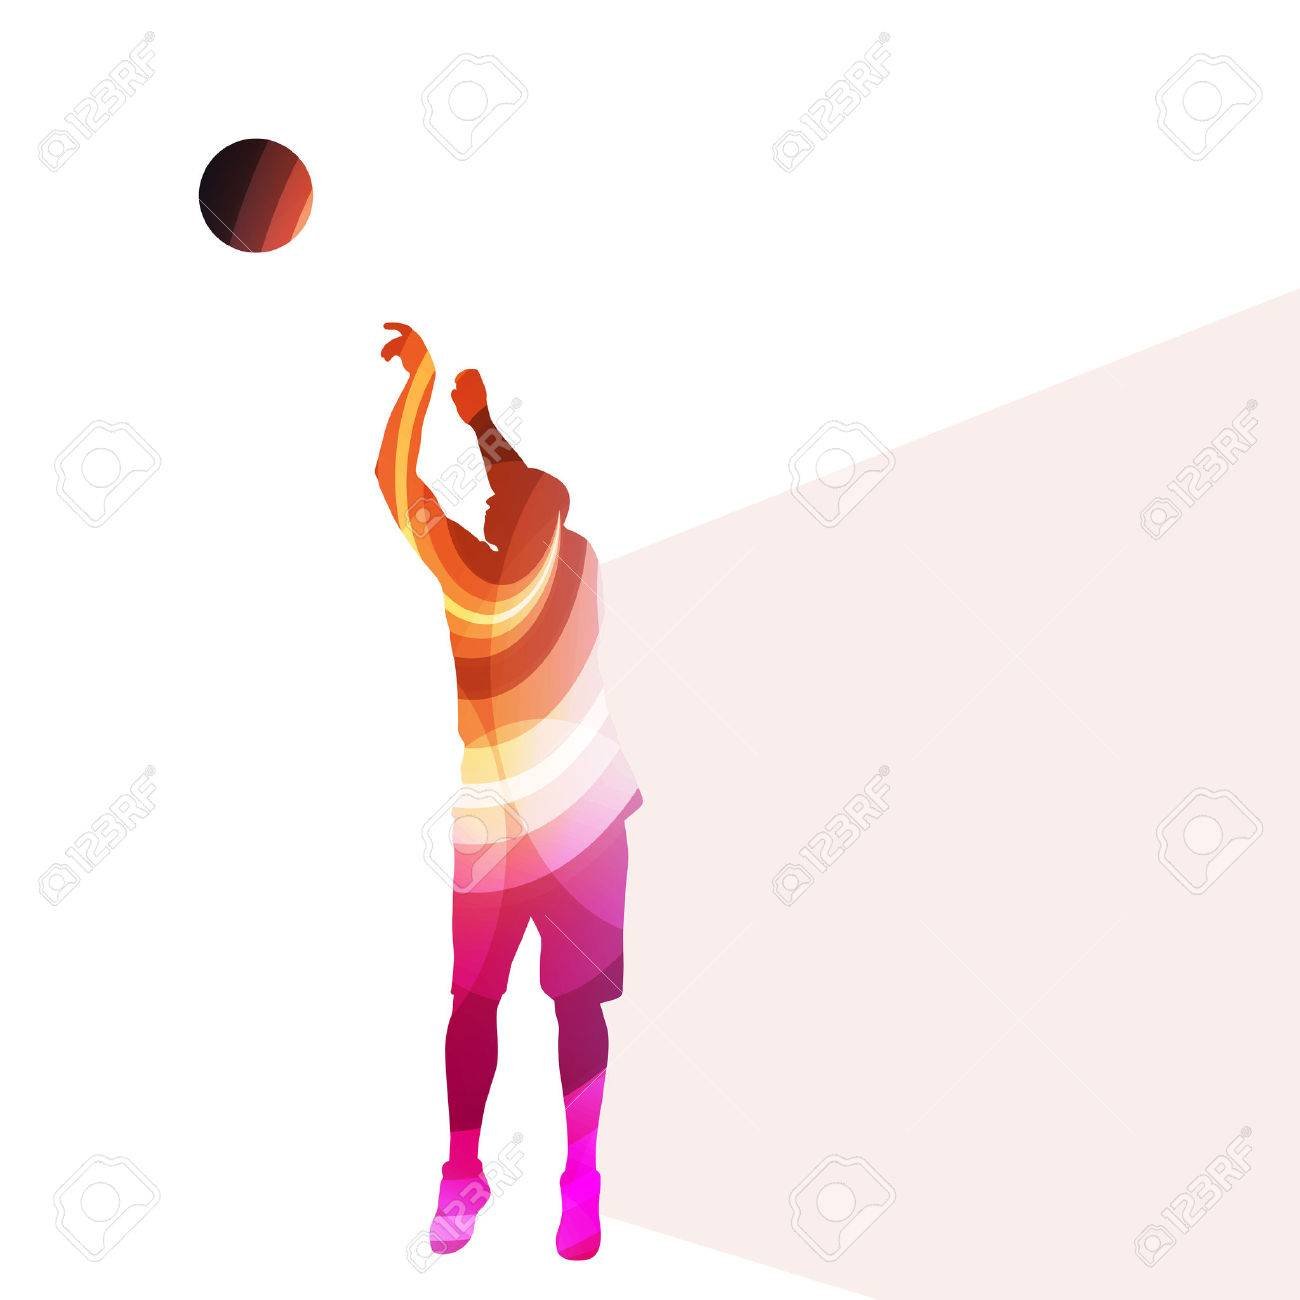 Basketball Player Man Silhouette Illustration Vector Background